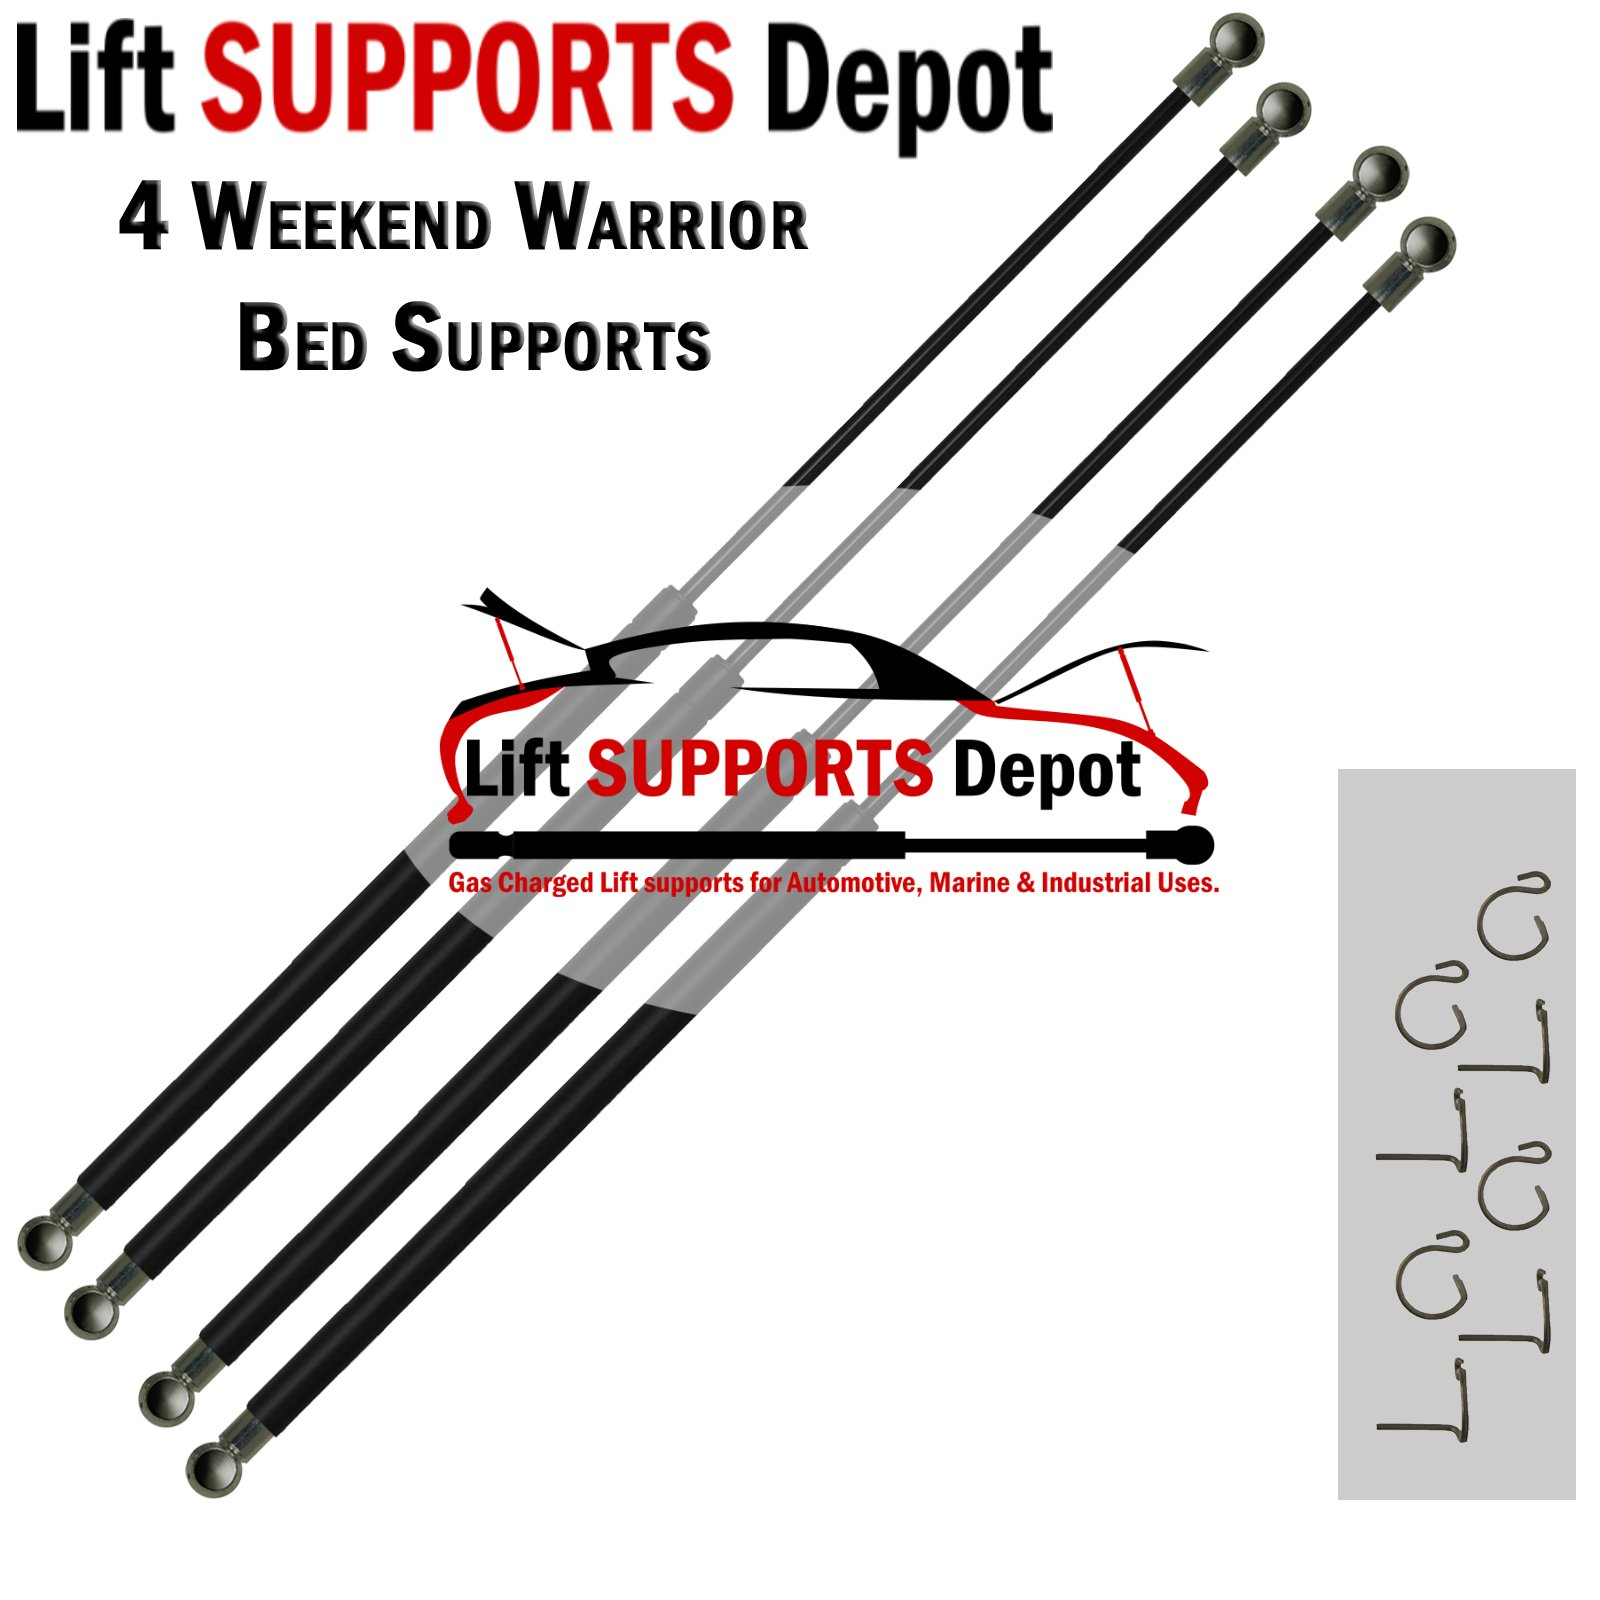 Qty (4) Weekend Warrior Bed Shocks Toy Hauler 30'' x 95lbs force Lift supports by Lift Supports Depot